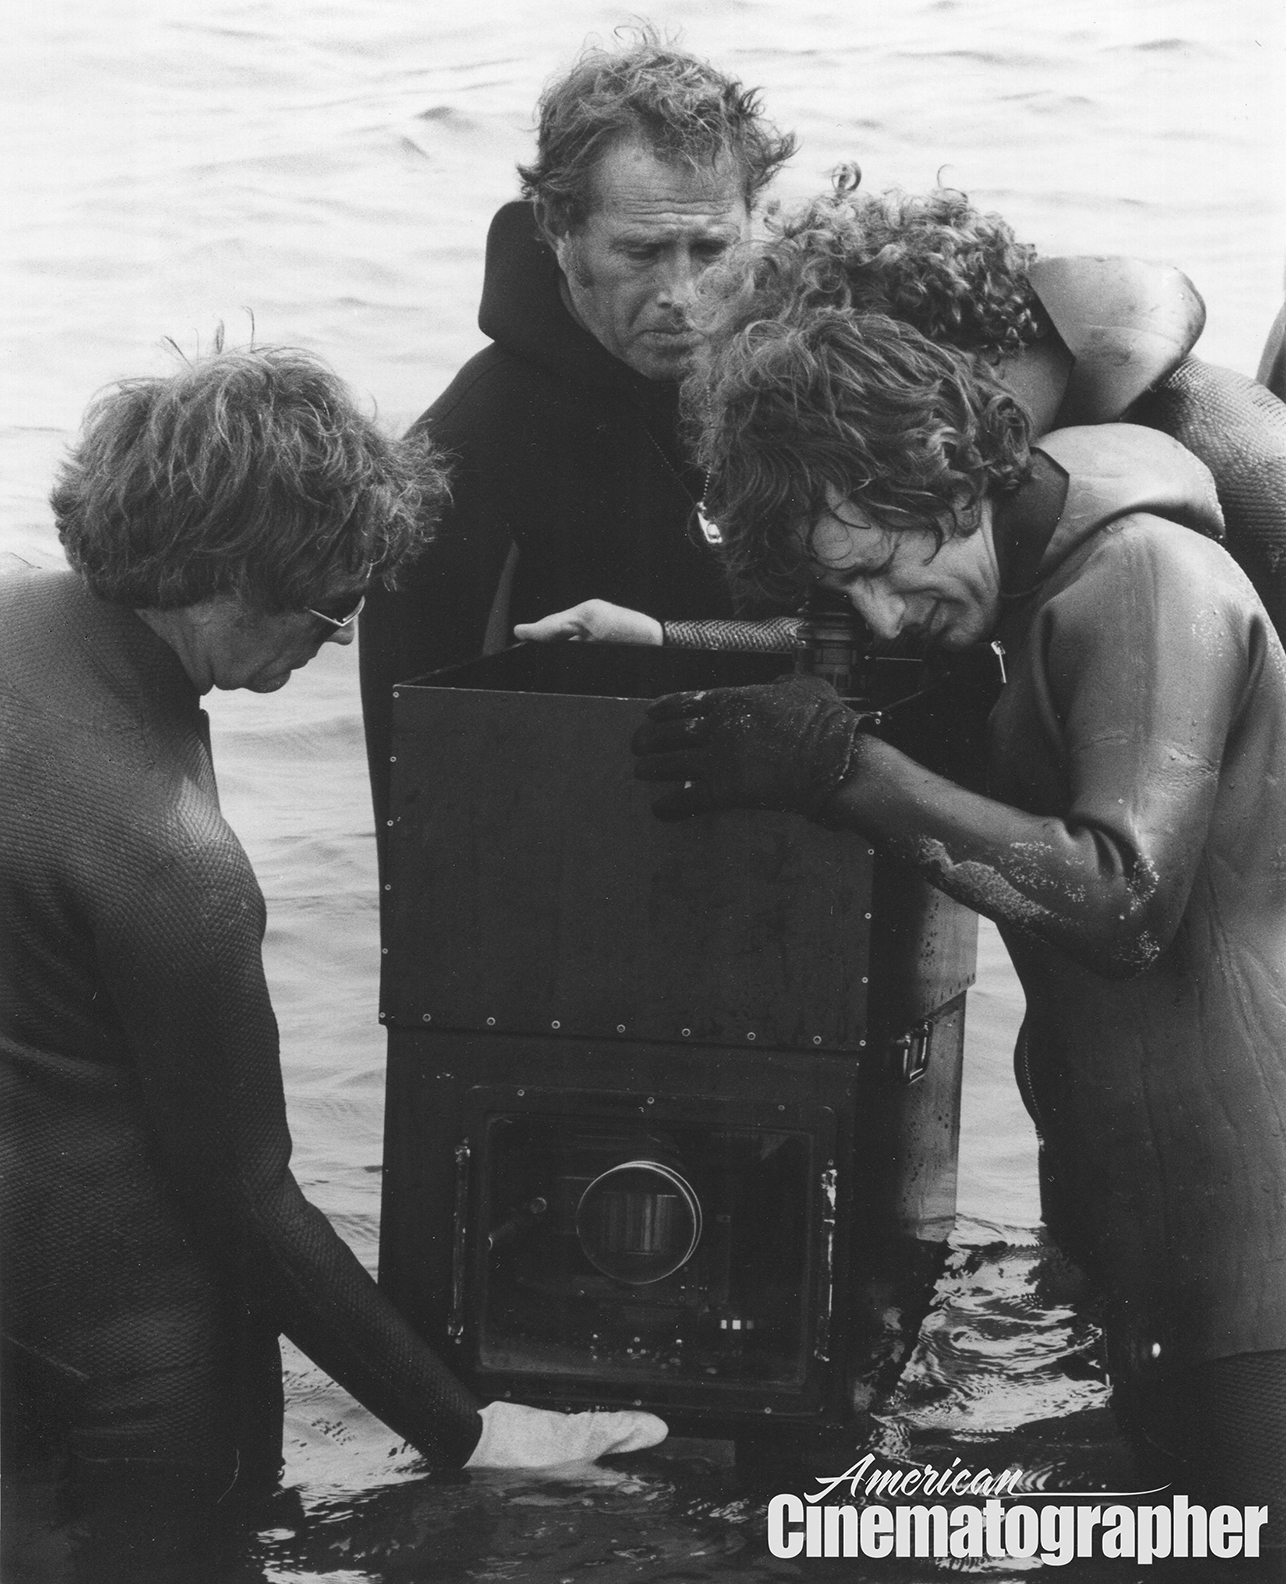 Spielberg checks the frame while shooting at surface level.